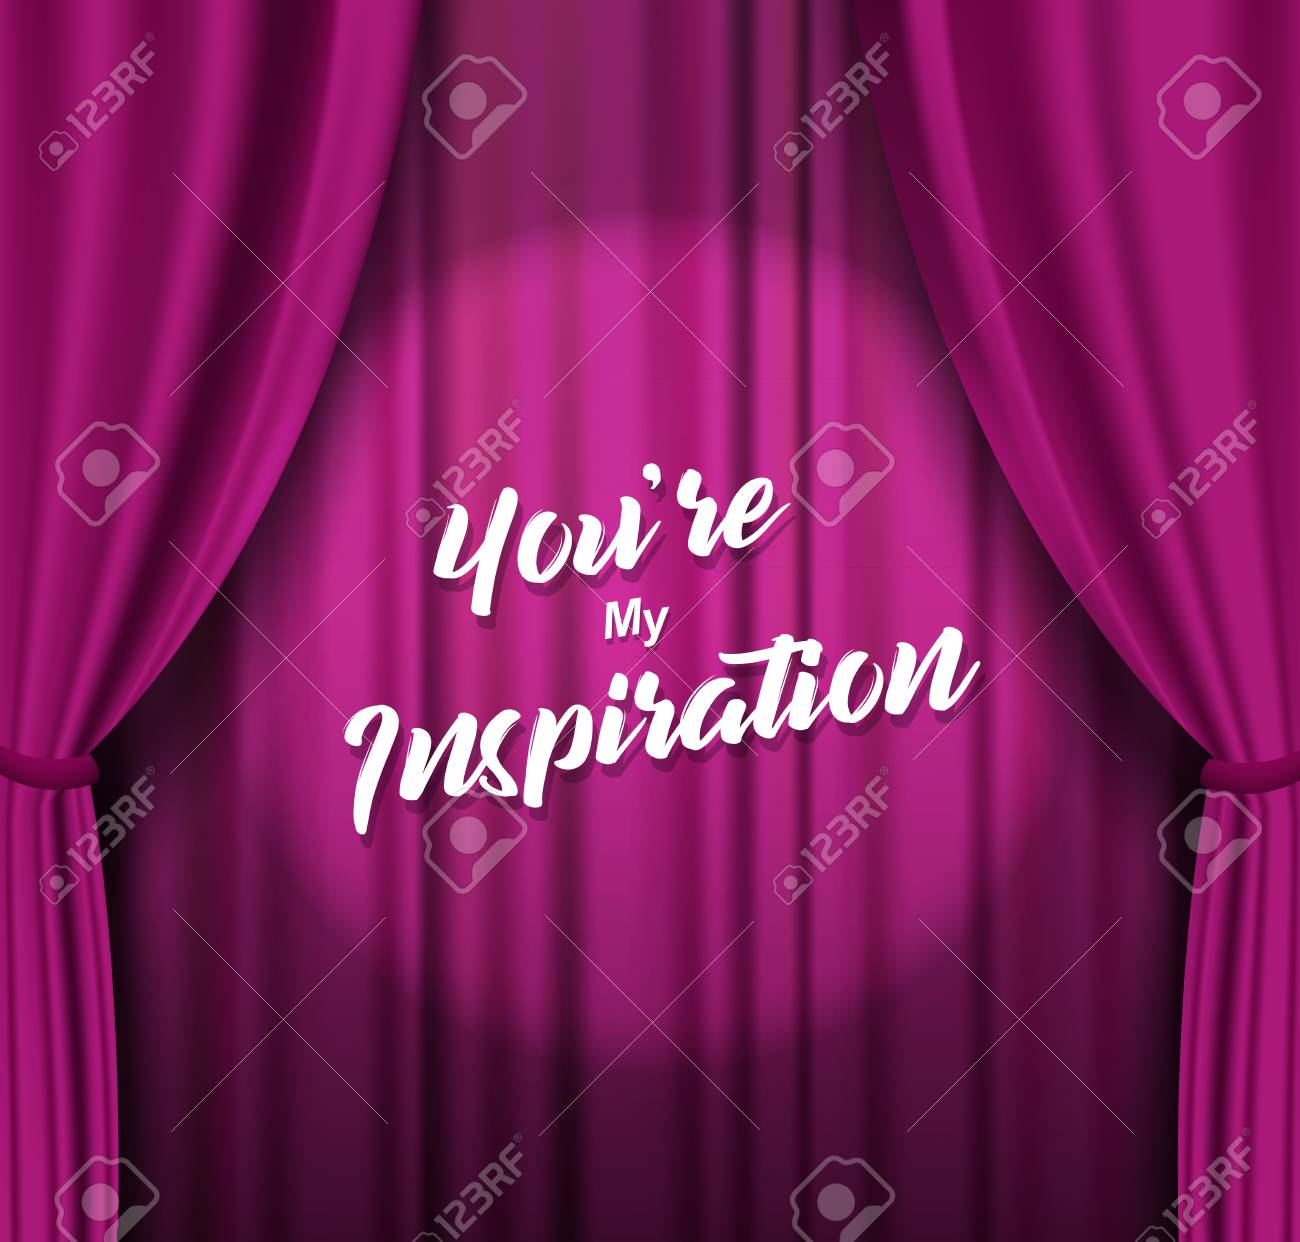 Theater stage with purple heavy curtain with text. - 126166027